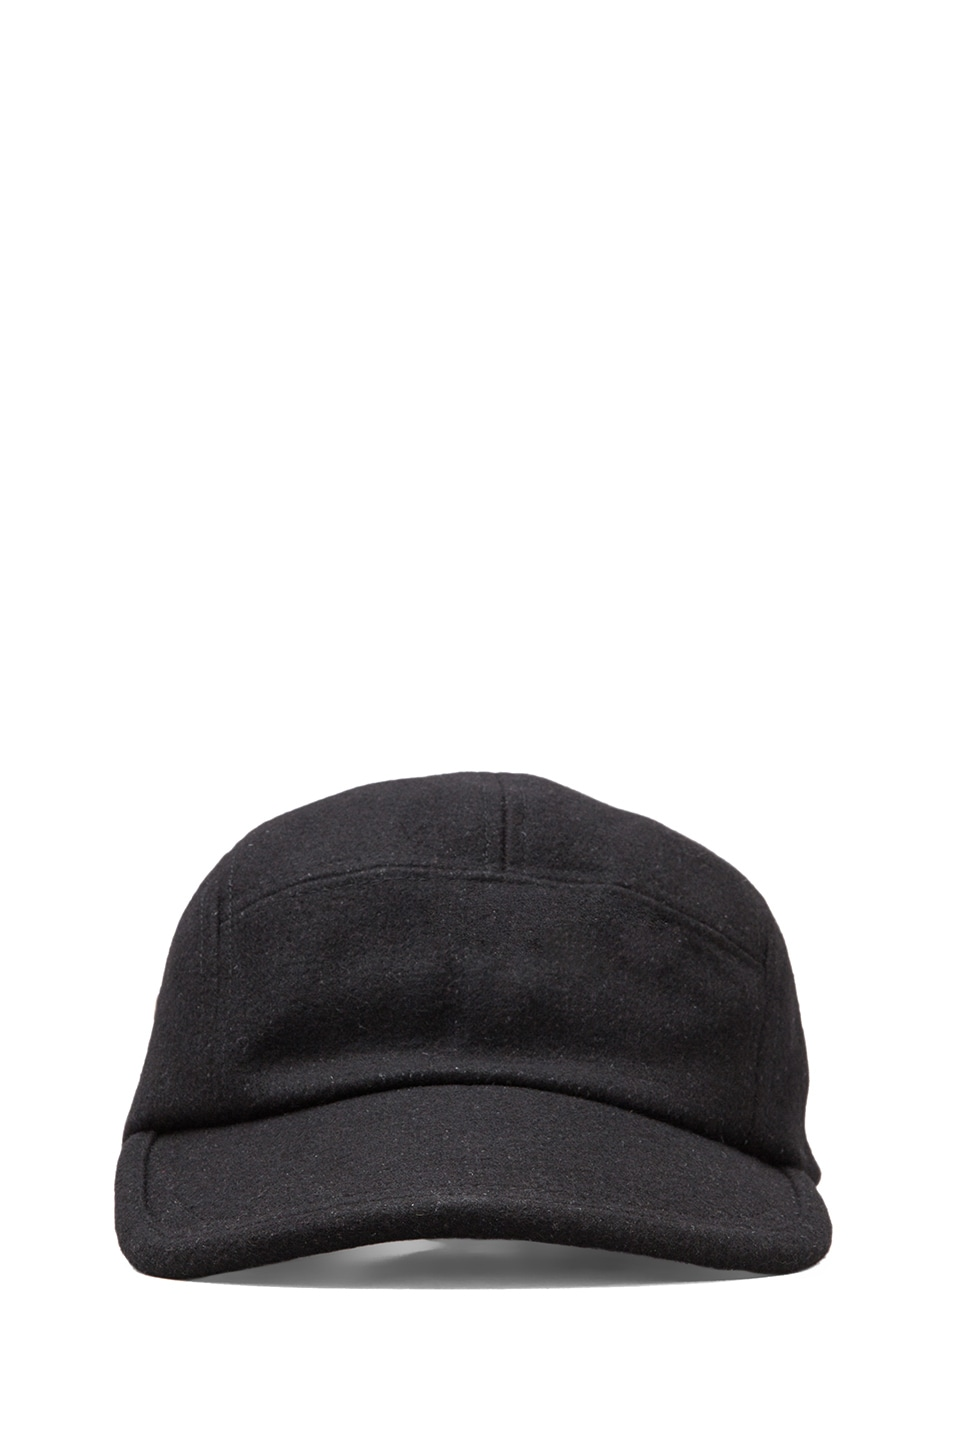 Theory Abel Hat in Black Multi